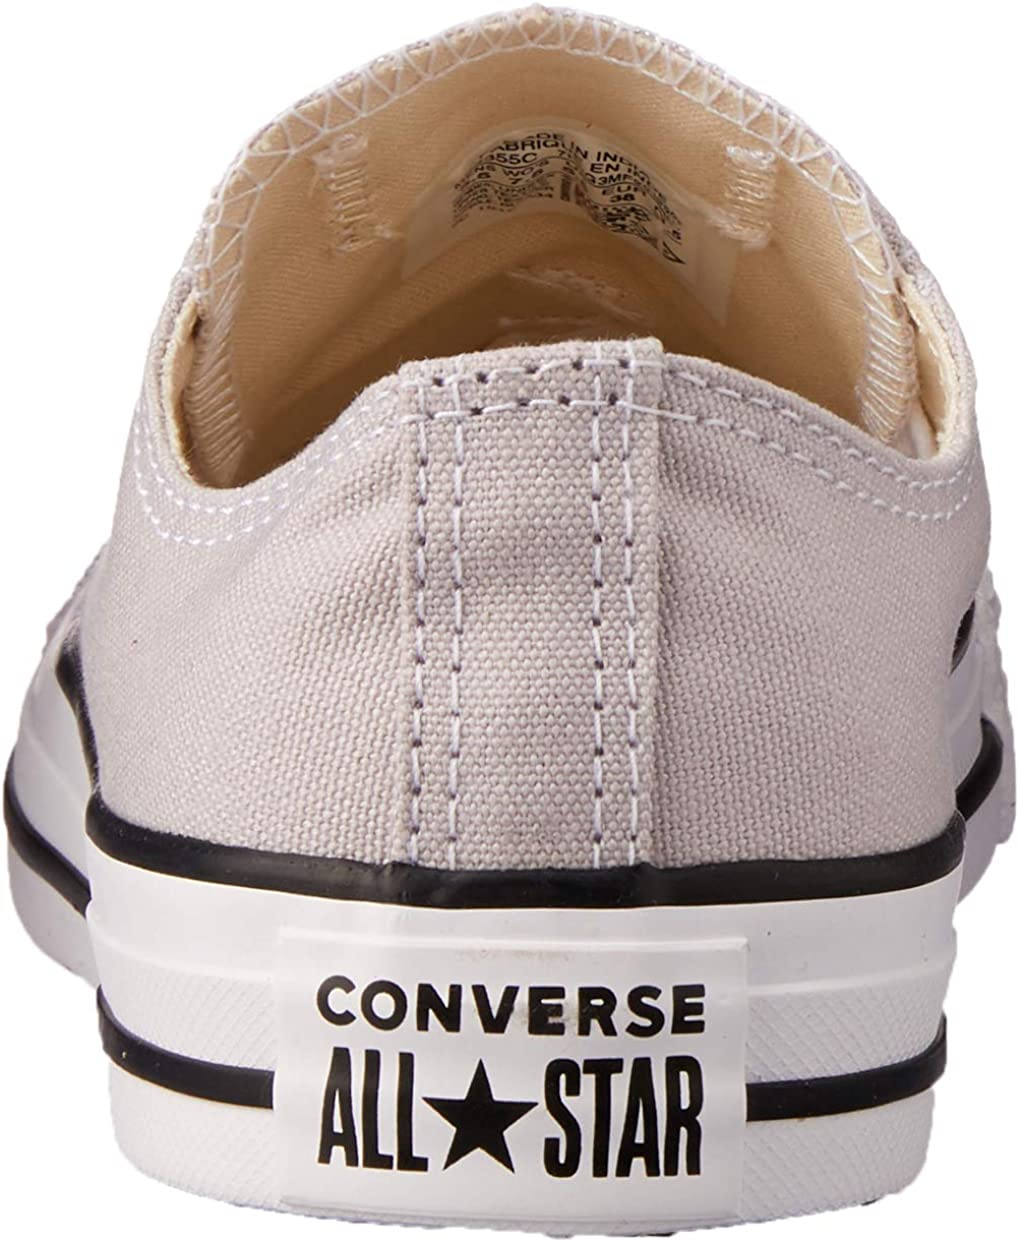 Converse Chuck Taylor All Star, Sneakers Basses Mixte Adulte